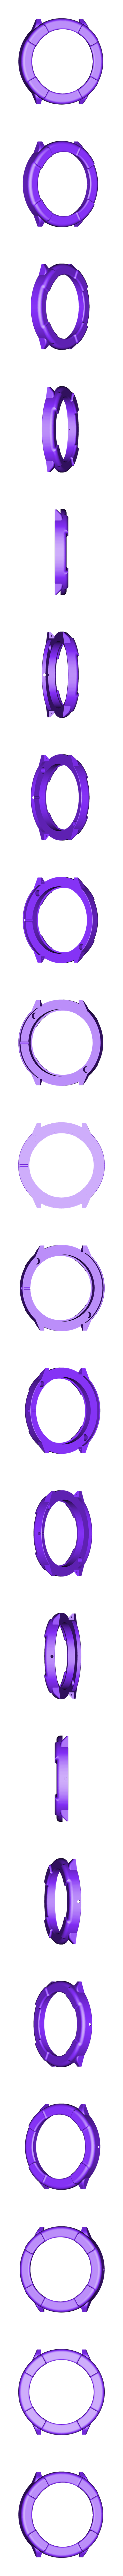 Watch_Case_3_-_Alternative.stl Download free STL file Modular Wristwatch - 3D Printing Build • Object to 3D print, Adylinn